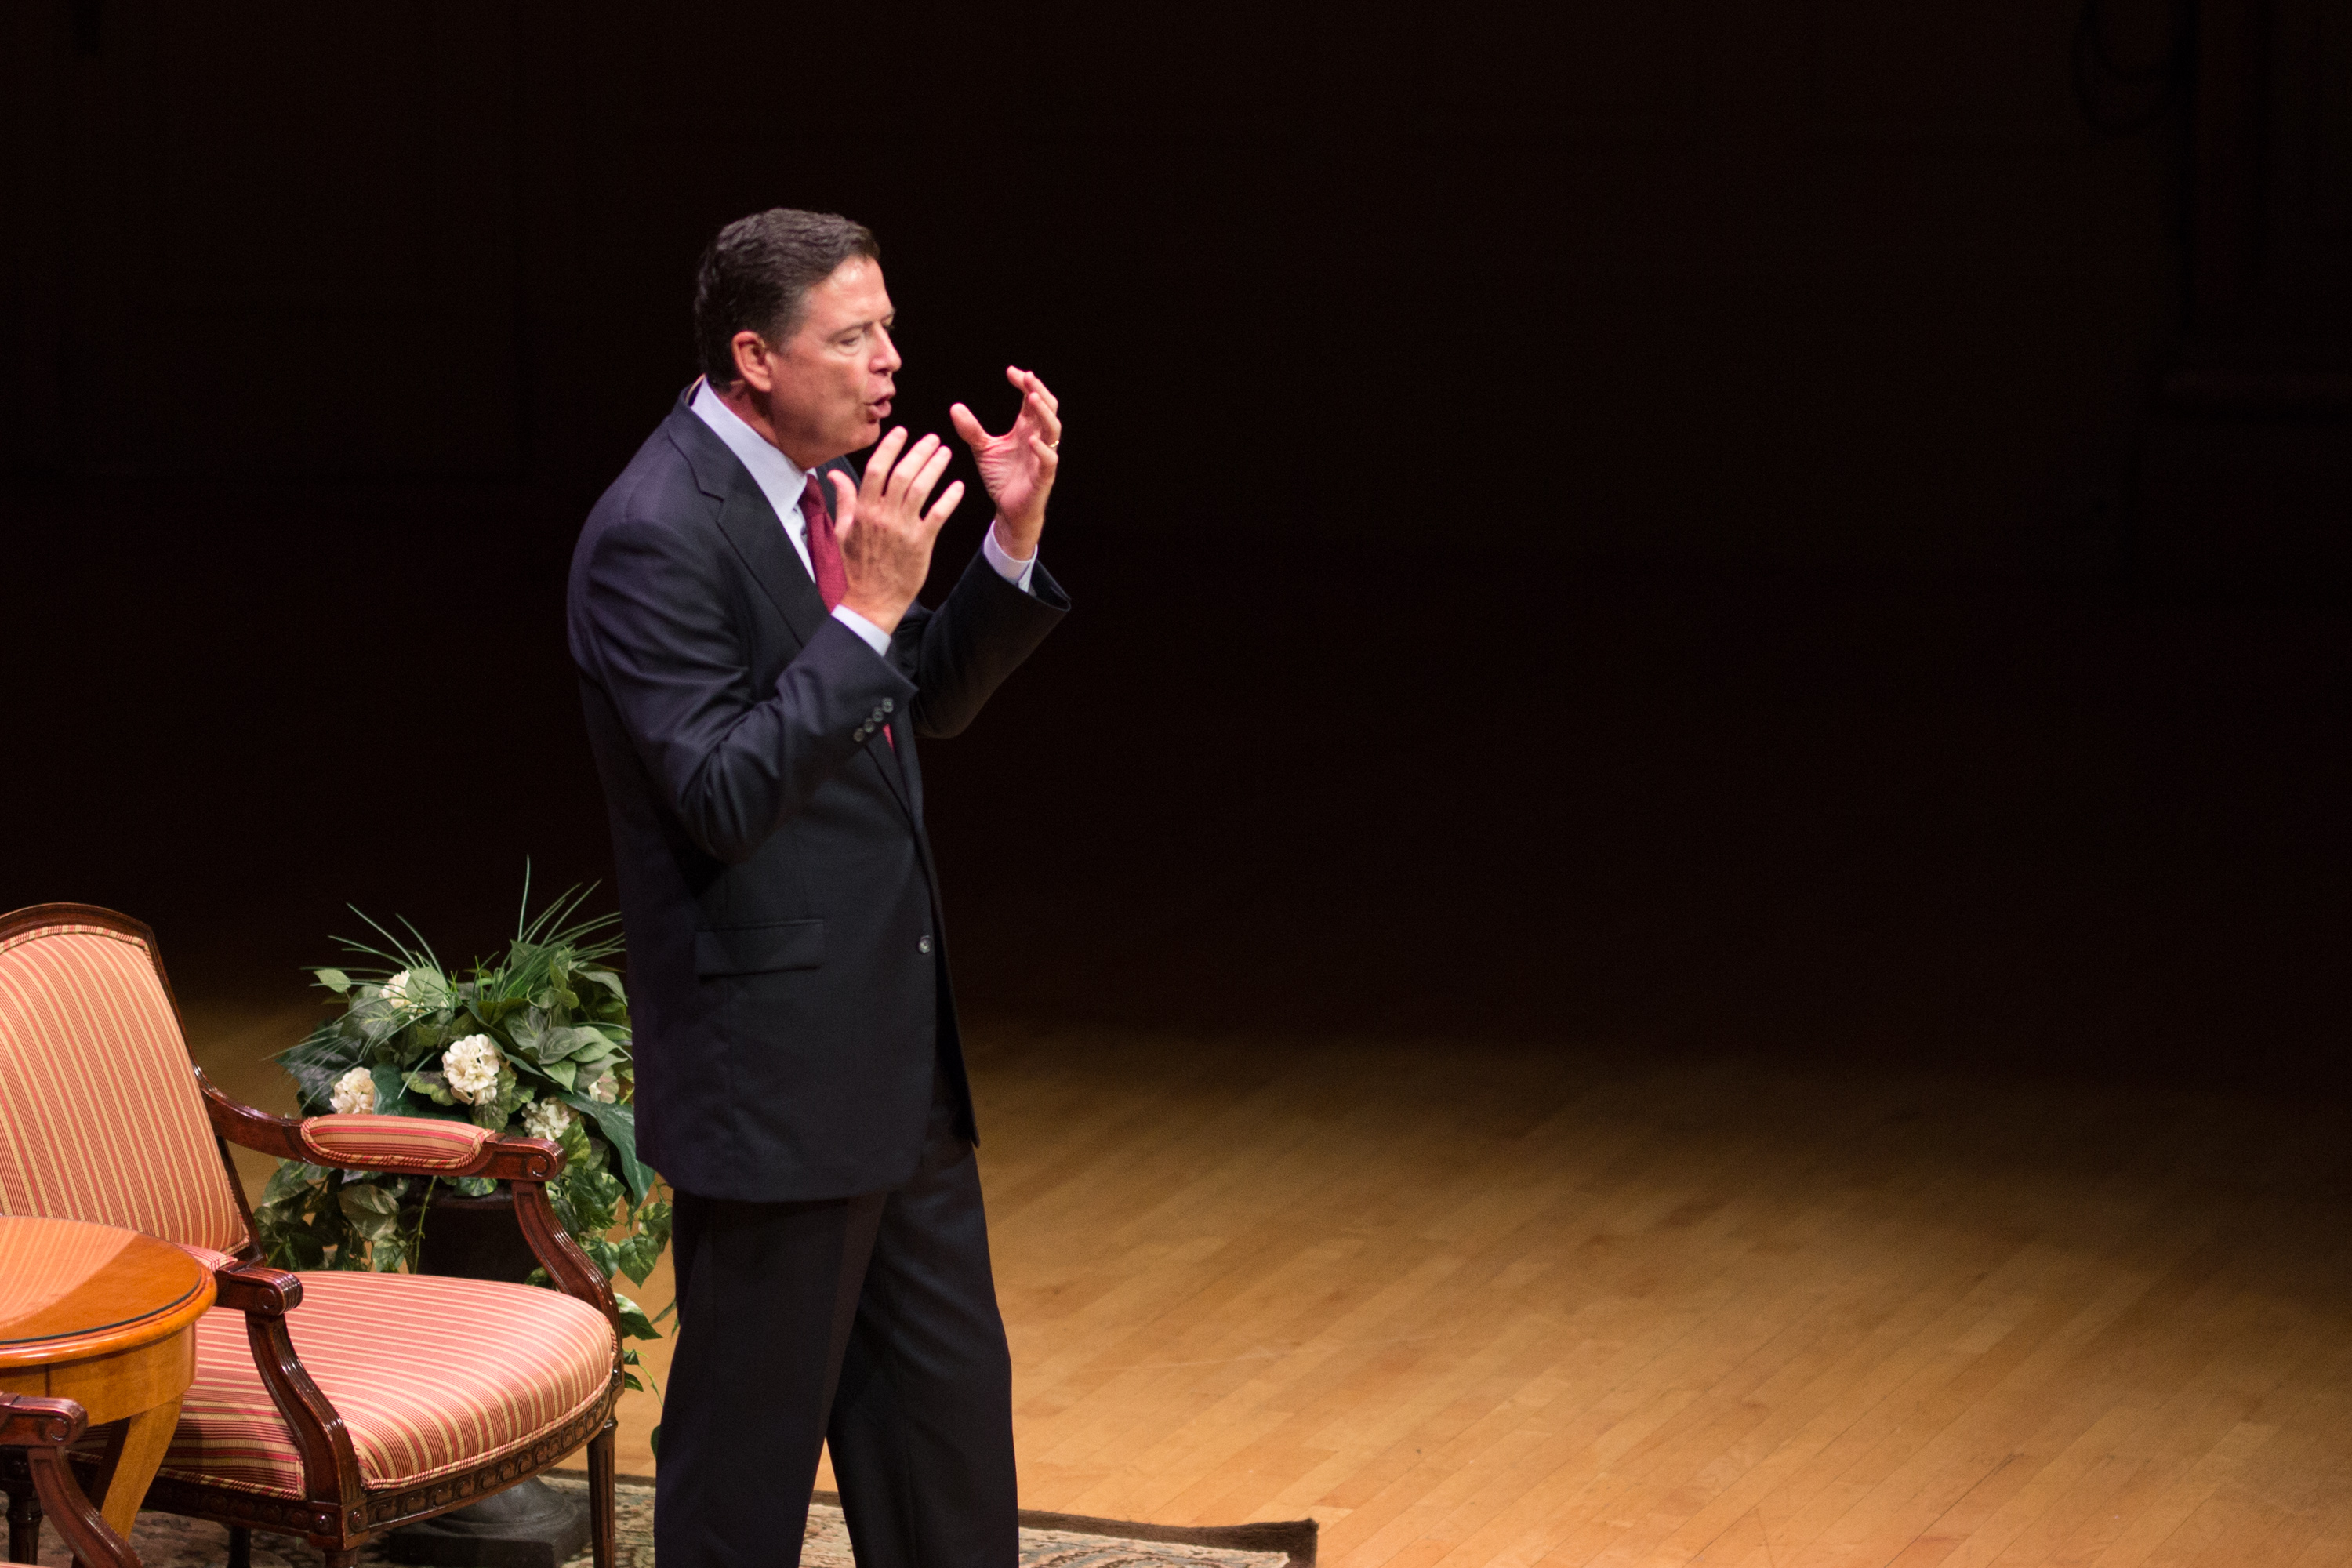 James Comey gestures with both hands while speaking on the Symphony Hall stage